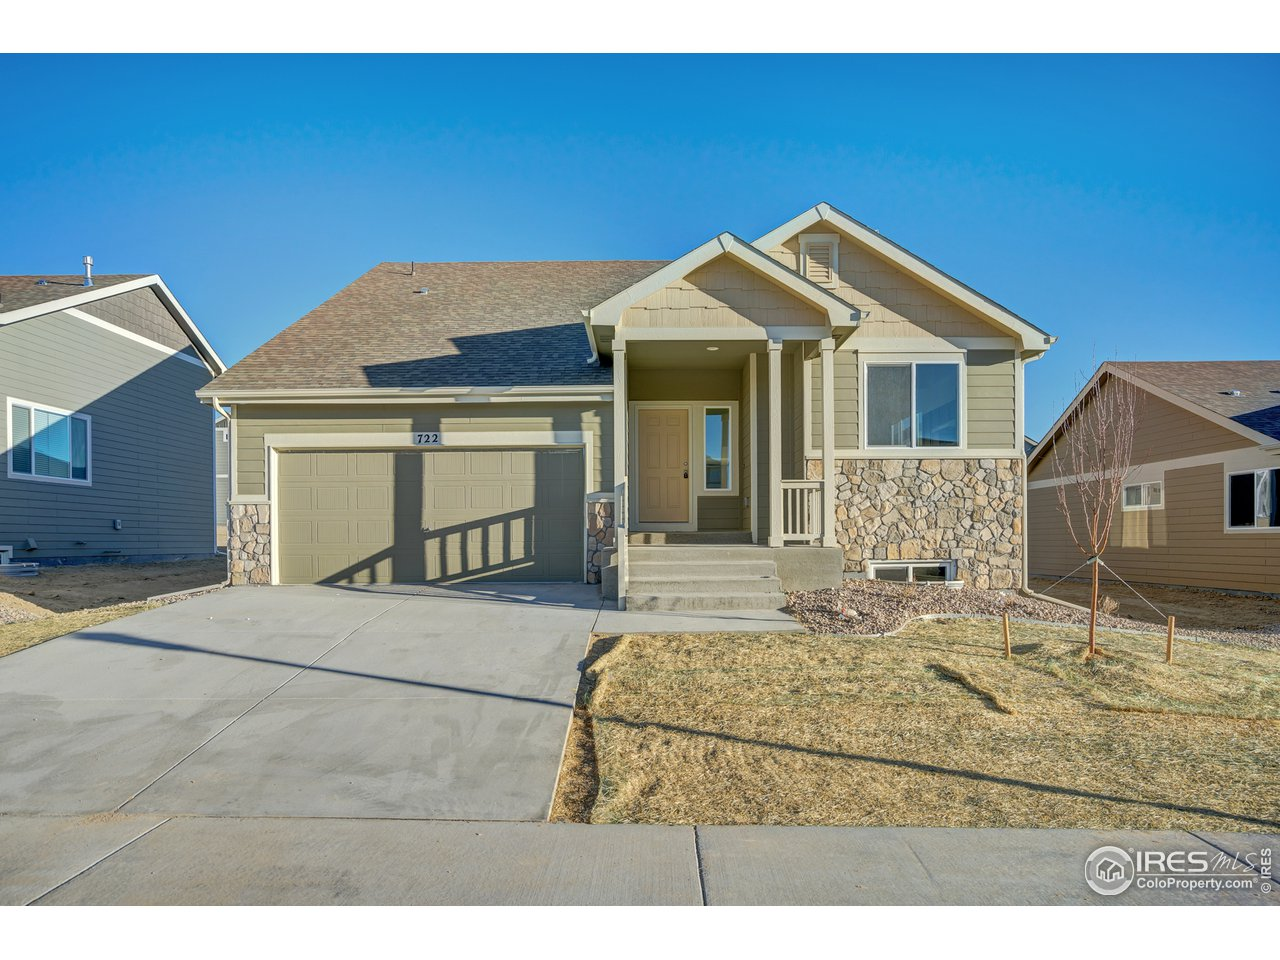 1329 87th Ave, Greeley CO 80634